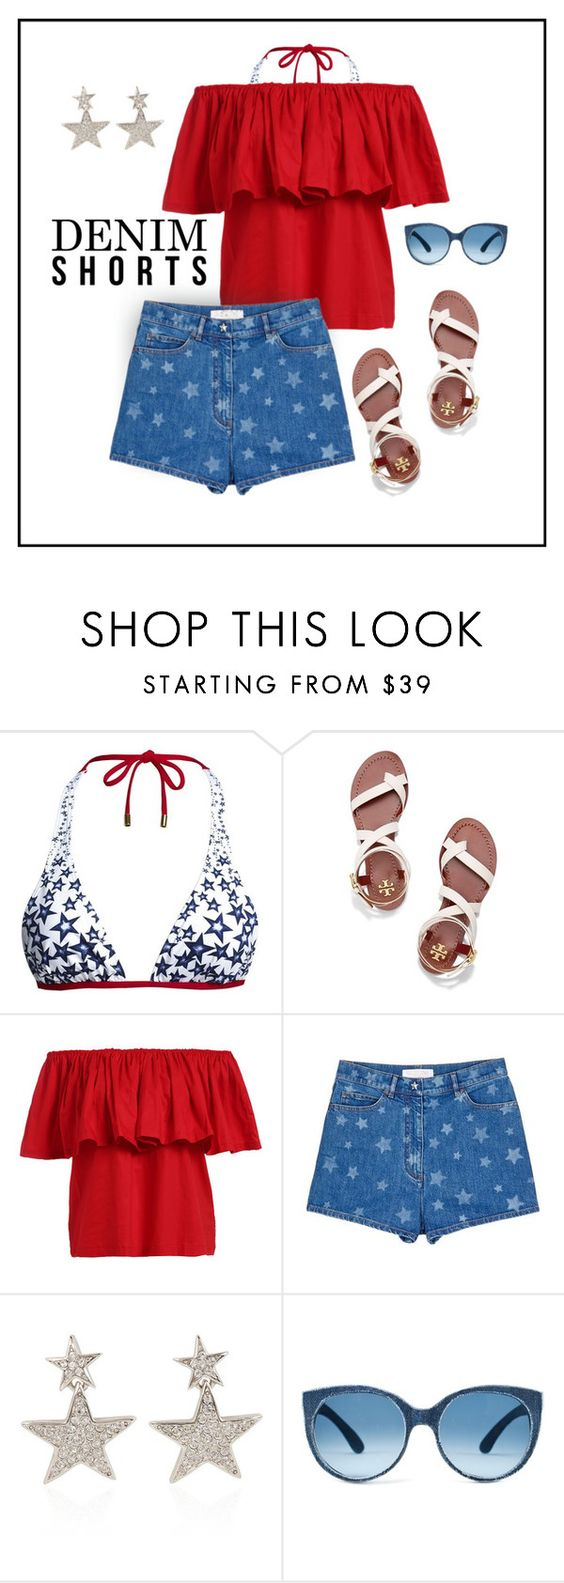 """""""Stars"""" by patricia-dimmick ❤ liked on Polyvore featuring Canvas by Lands' End, Tory Burch, Valentino, Kenneth Jay Lane, jeanshorts, denimshorts and cutoffs"""